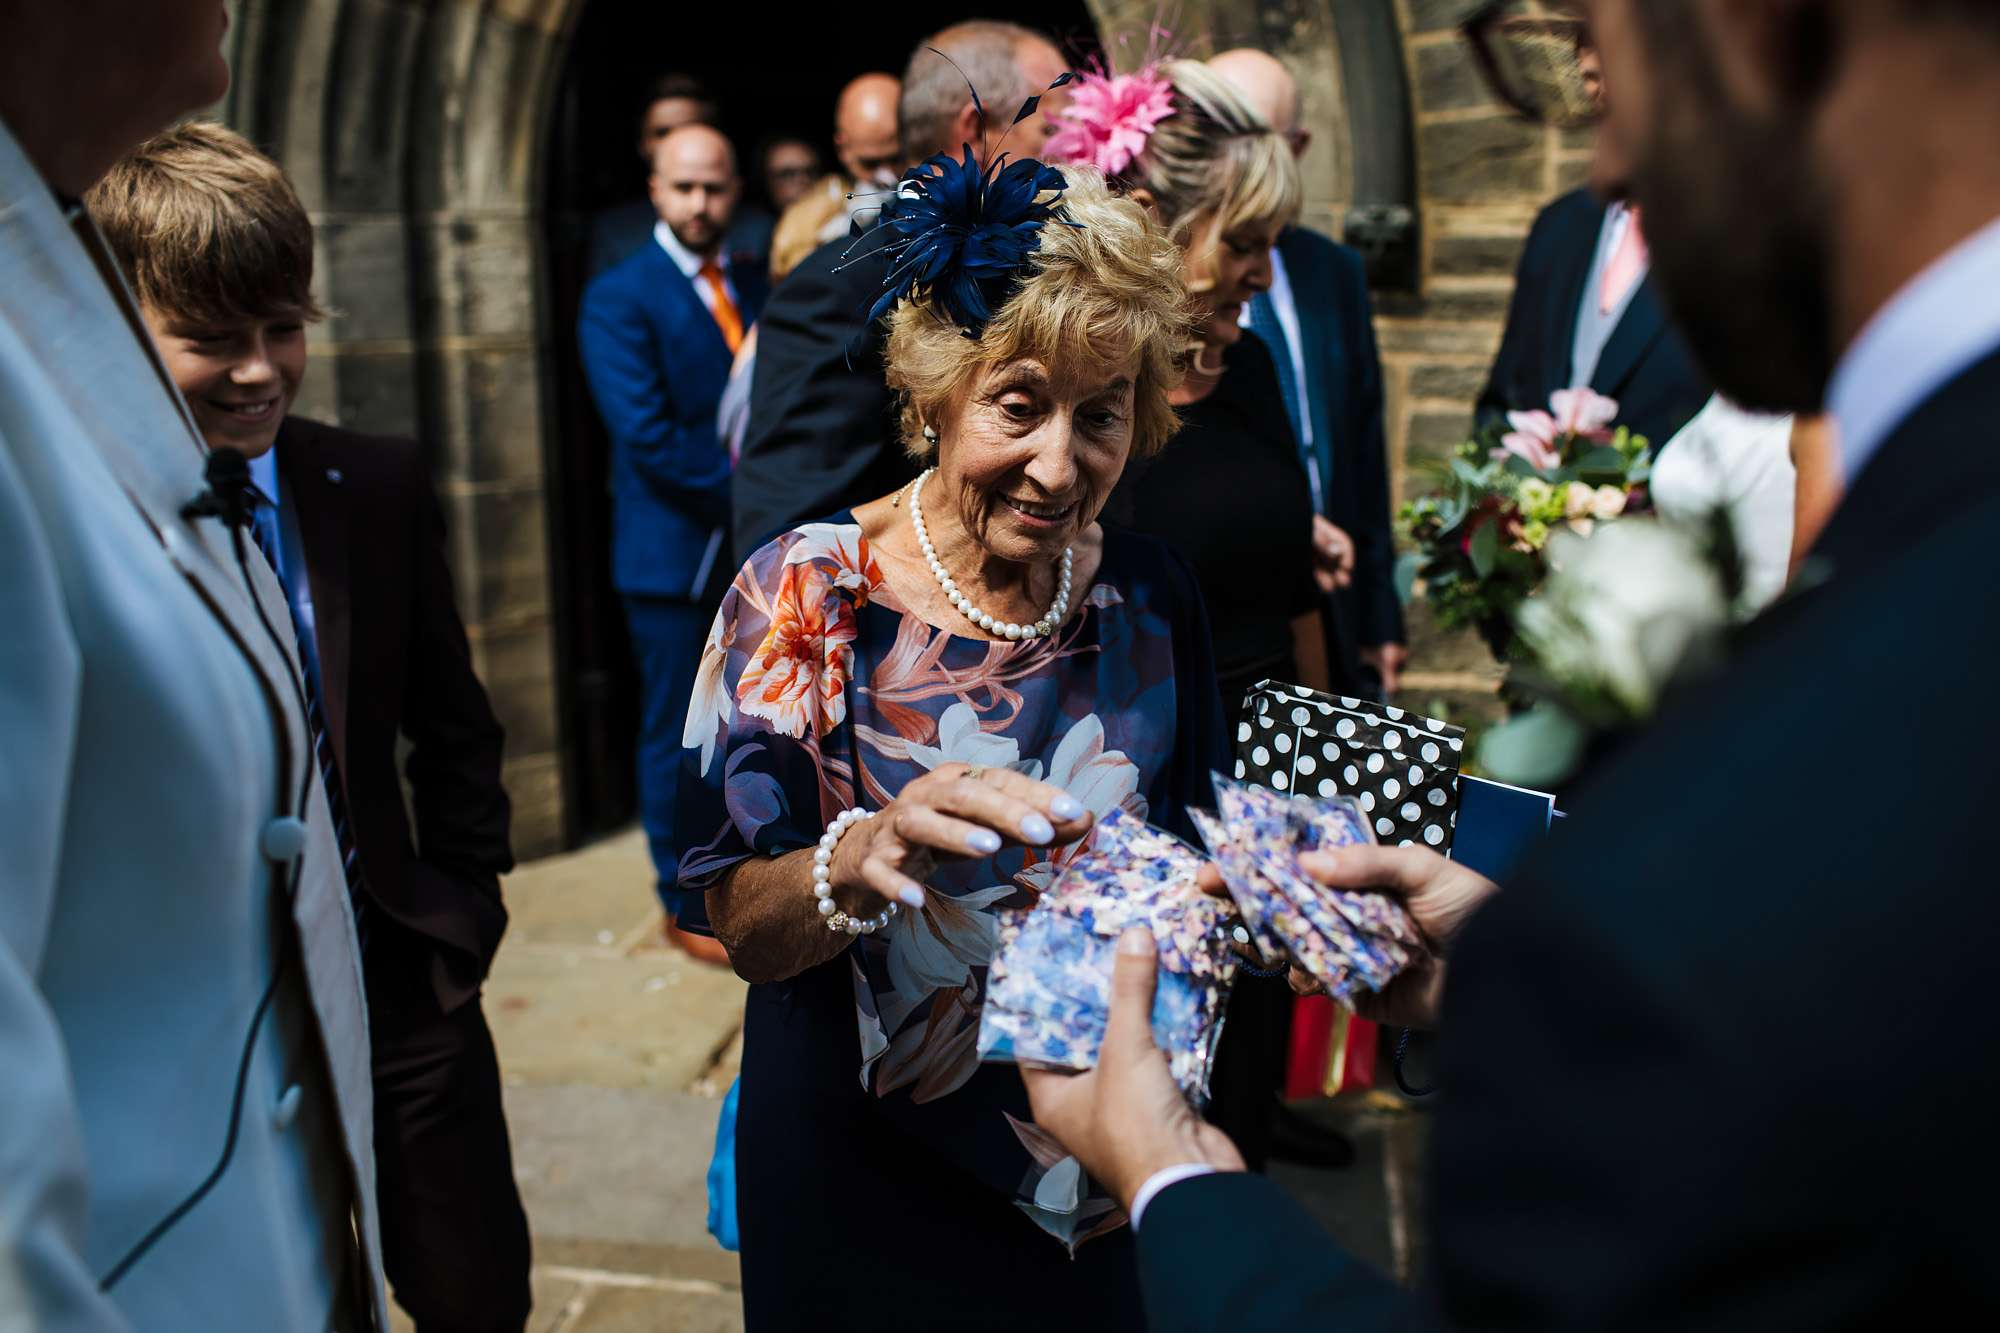 Wedding guest taking confetti in the sunshine